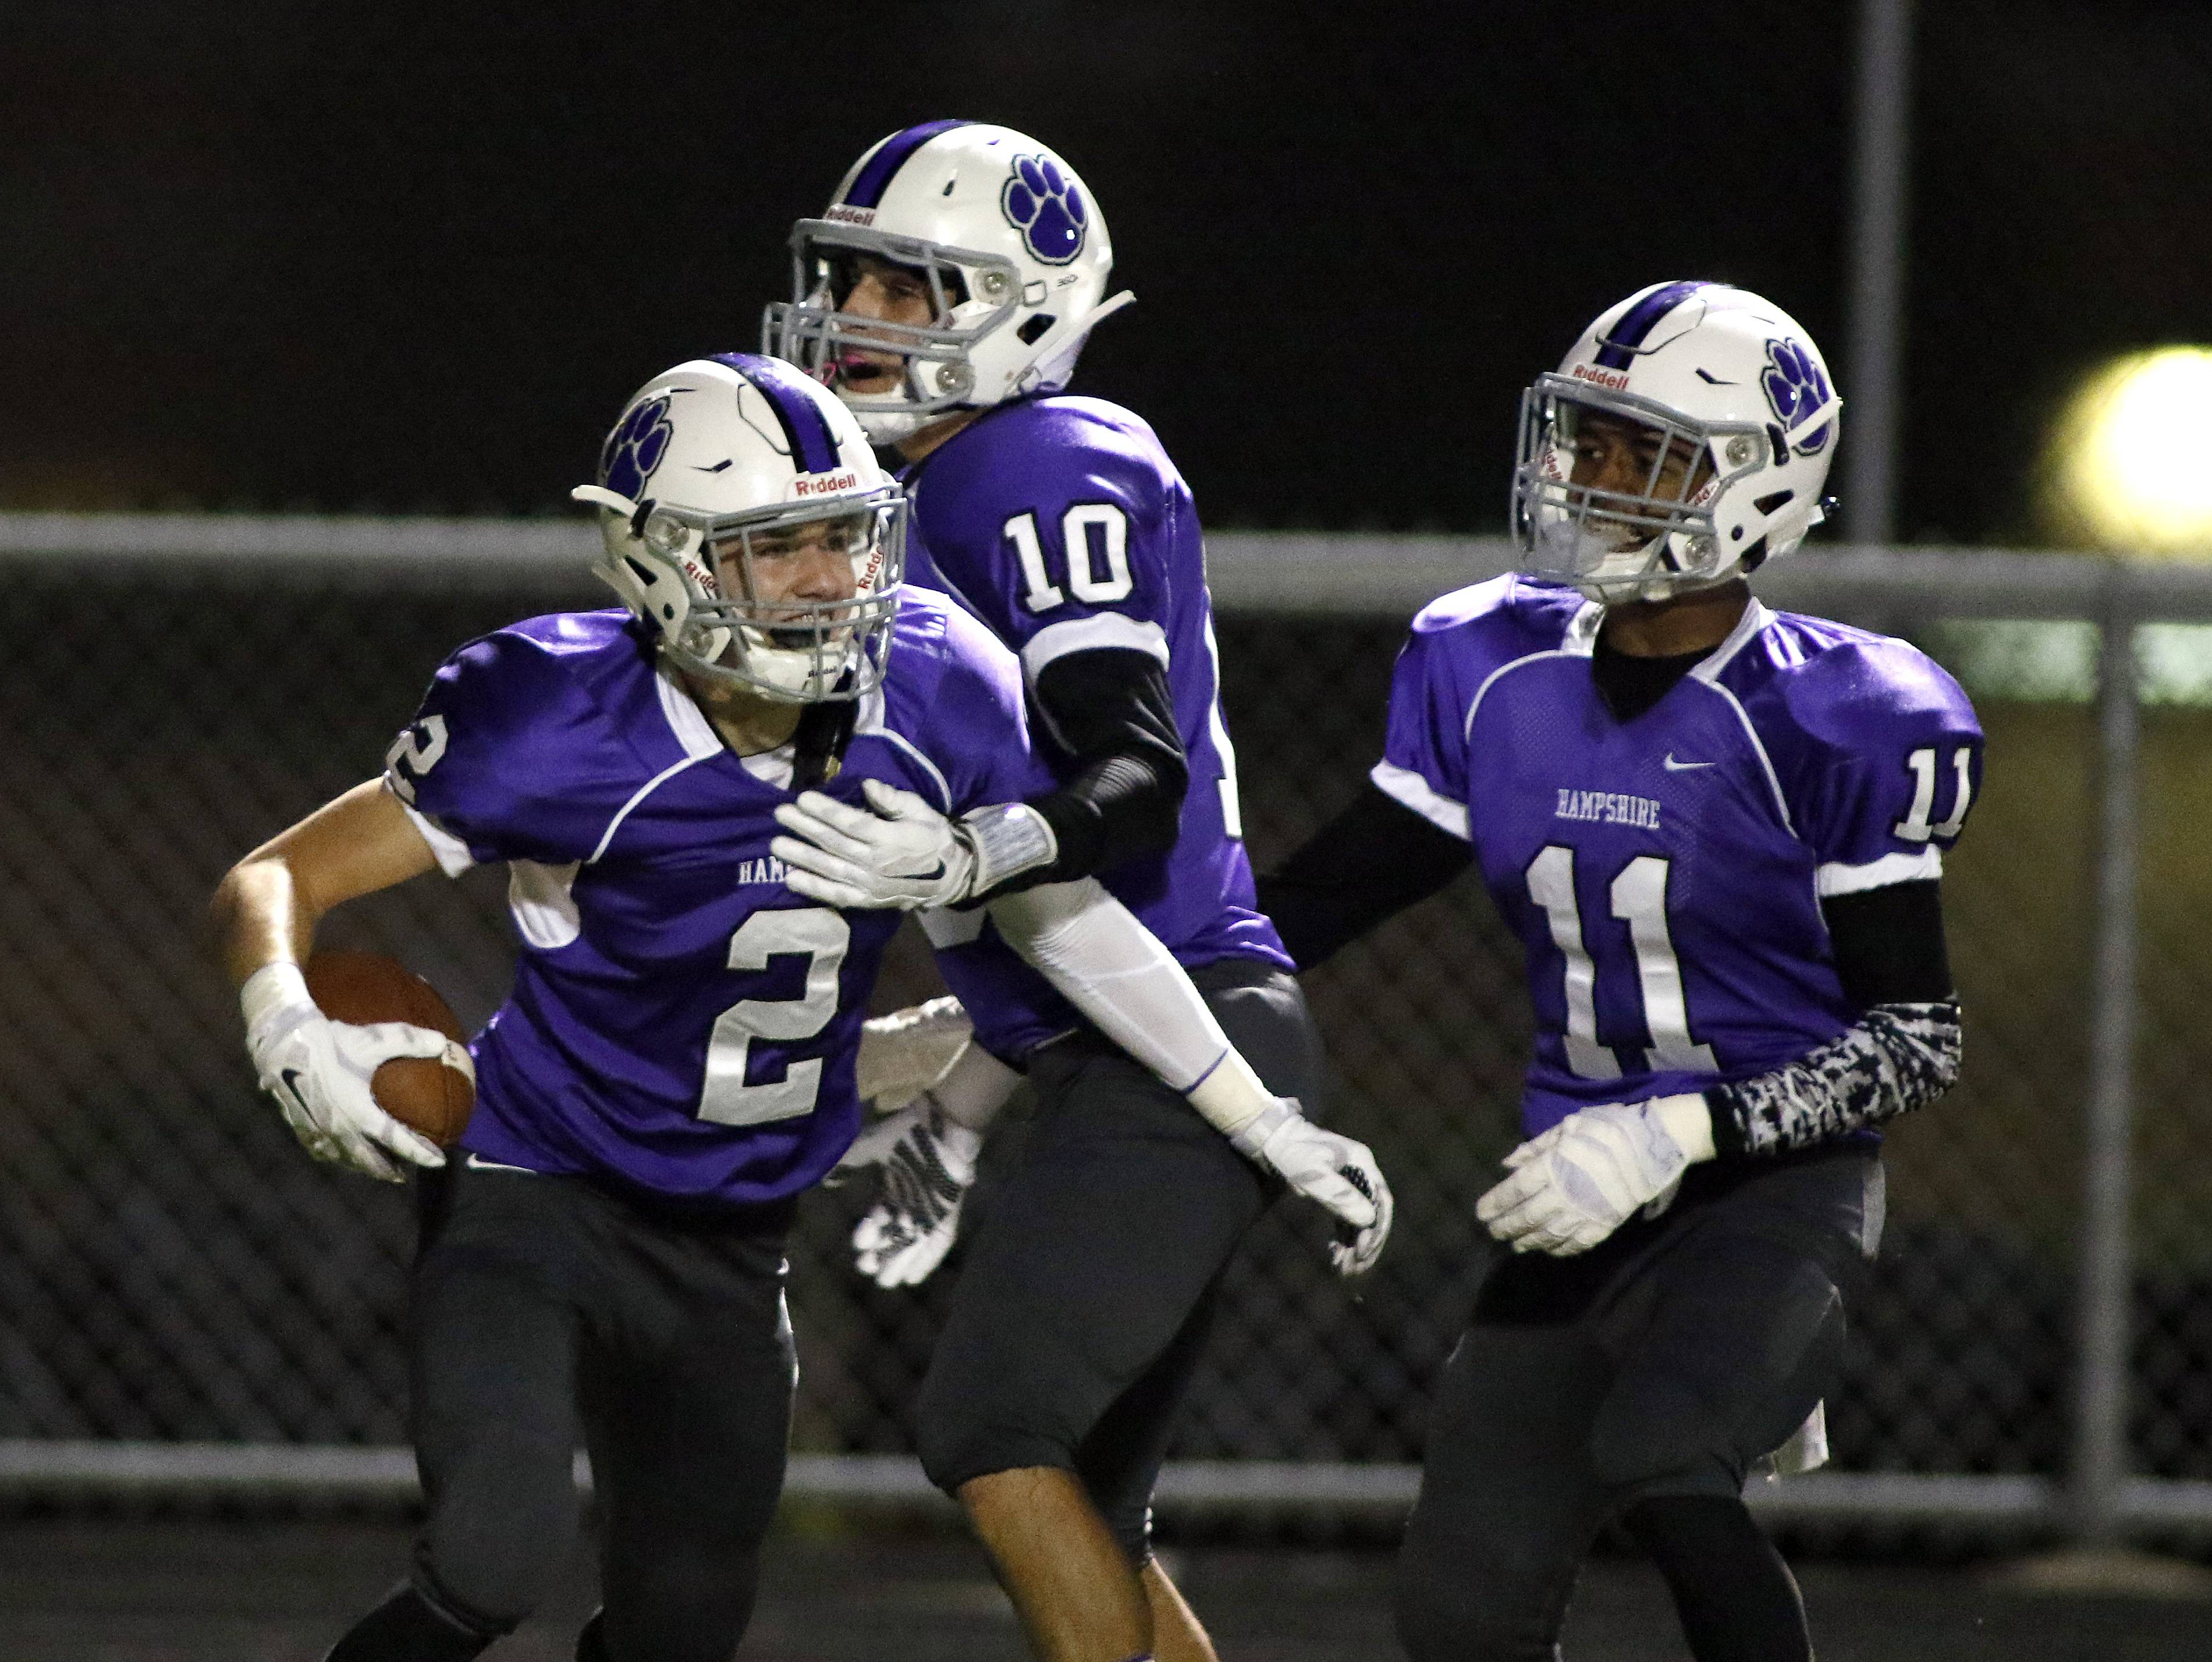 Hampshire's Jake Manning, No. 2, celebrates his touchdown against Grayslake Central with teammates Connor Burke, No. 10, and Xavier Bennett, No. 11.